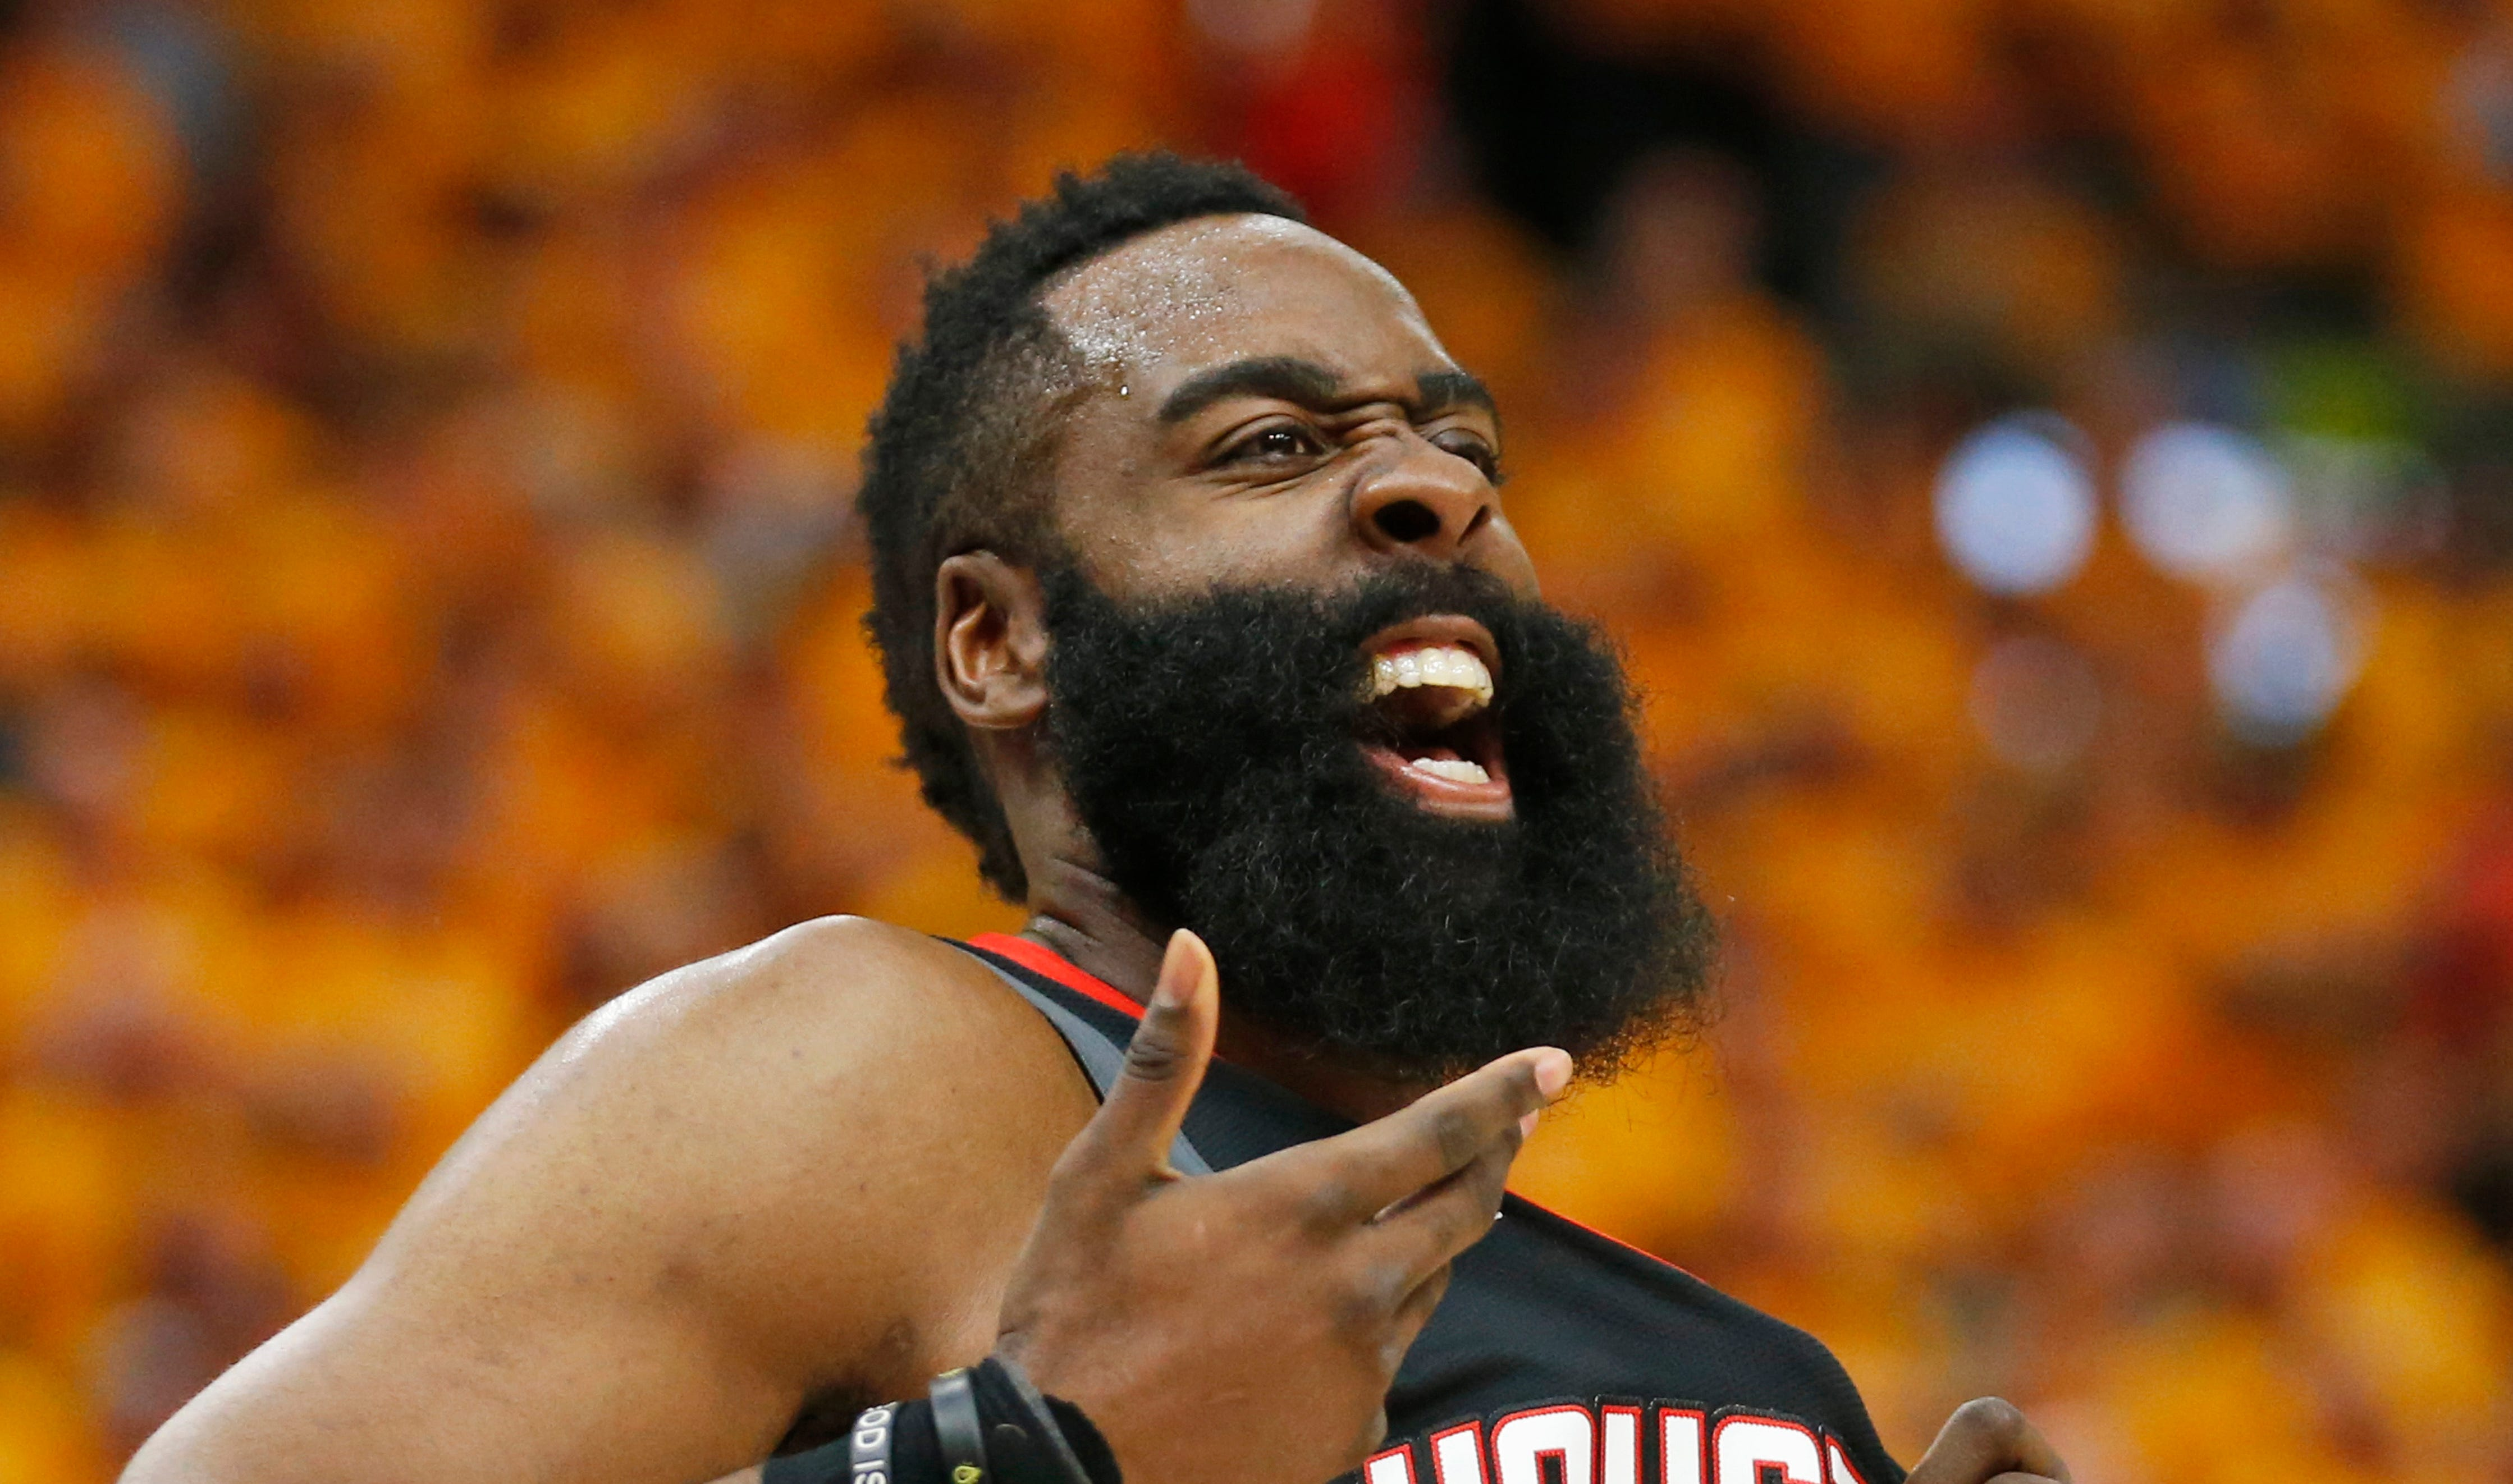 Opinion: James Harden started 0-15, but his flops are why fans are roasting him